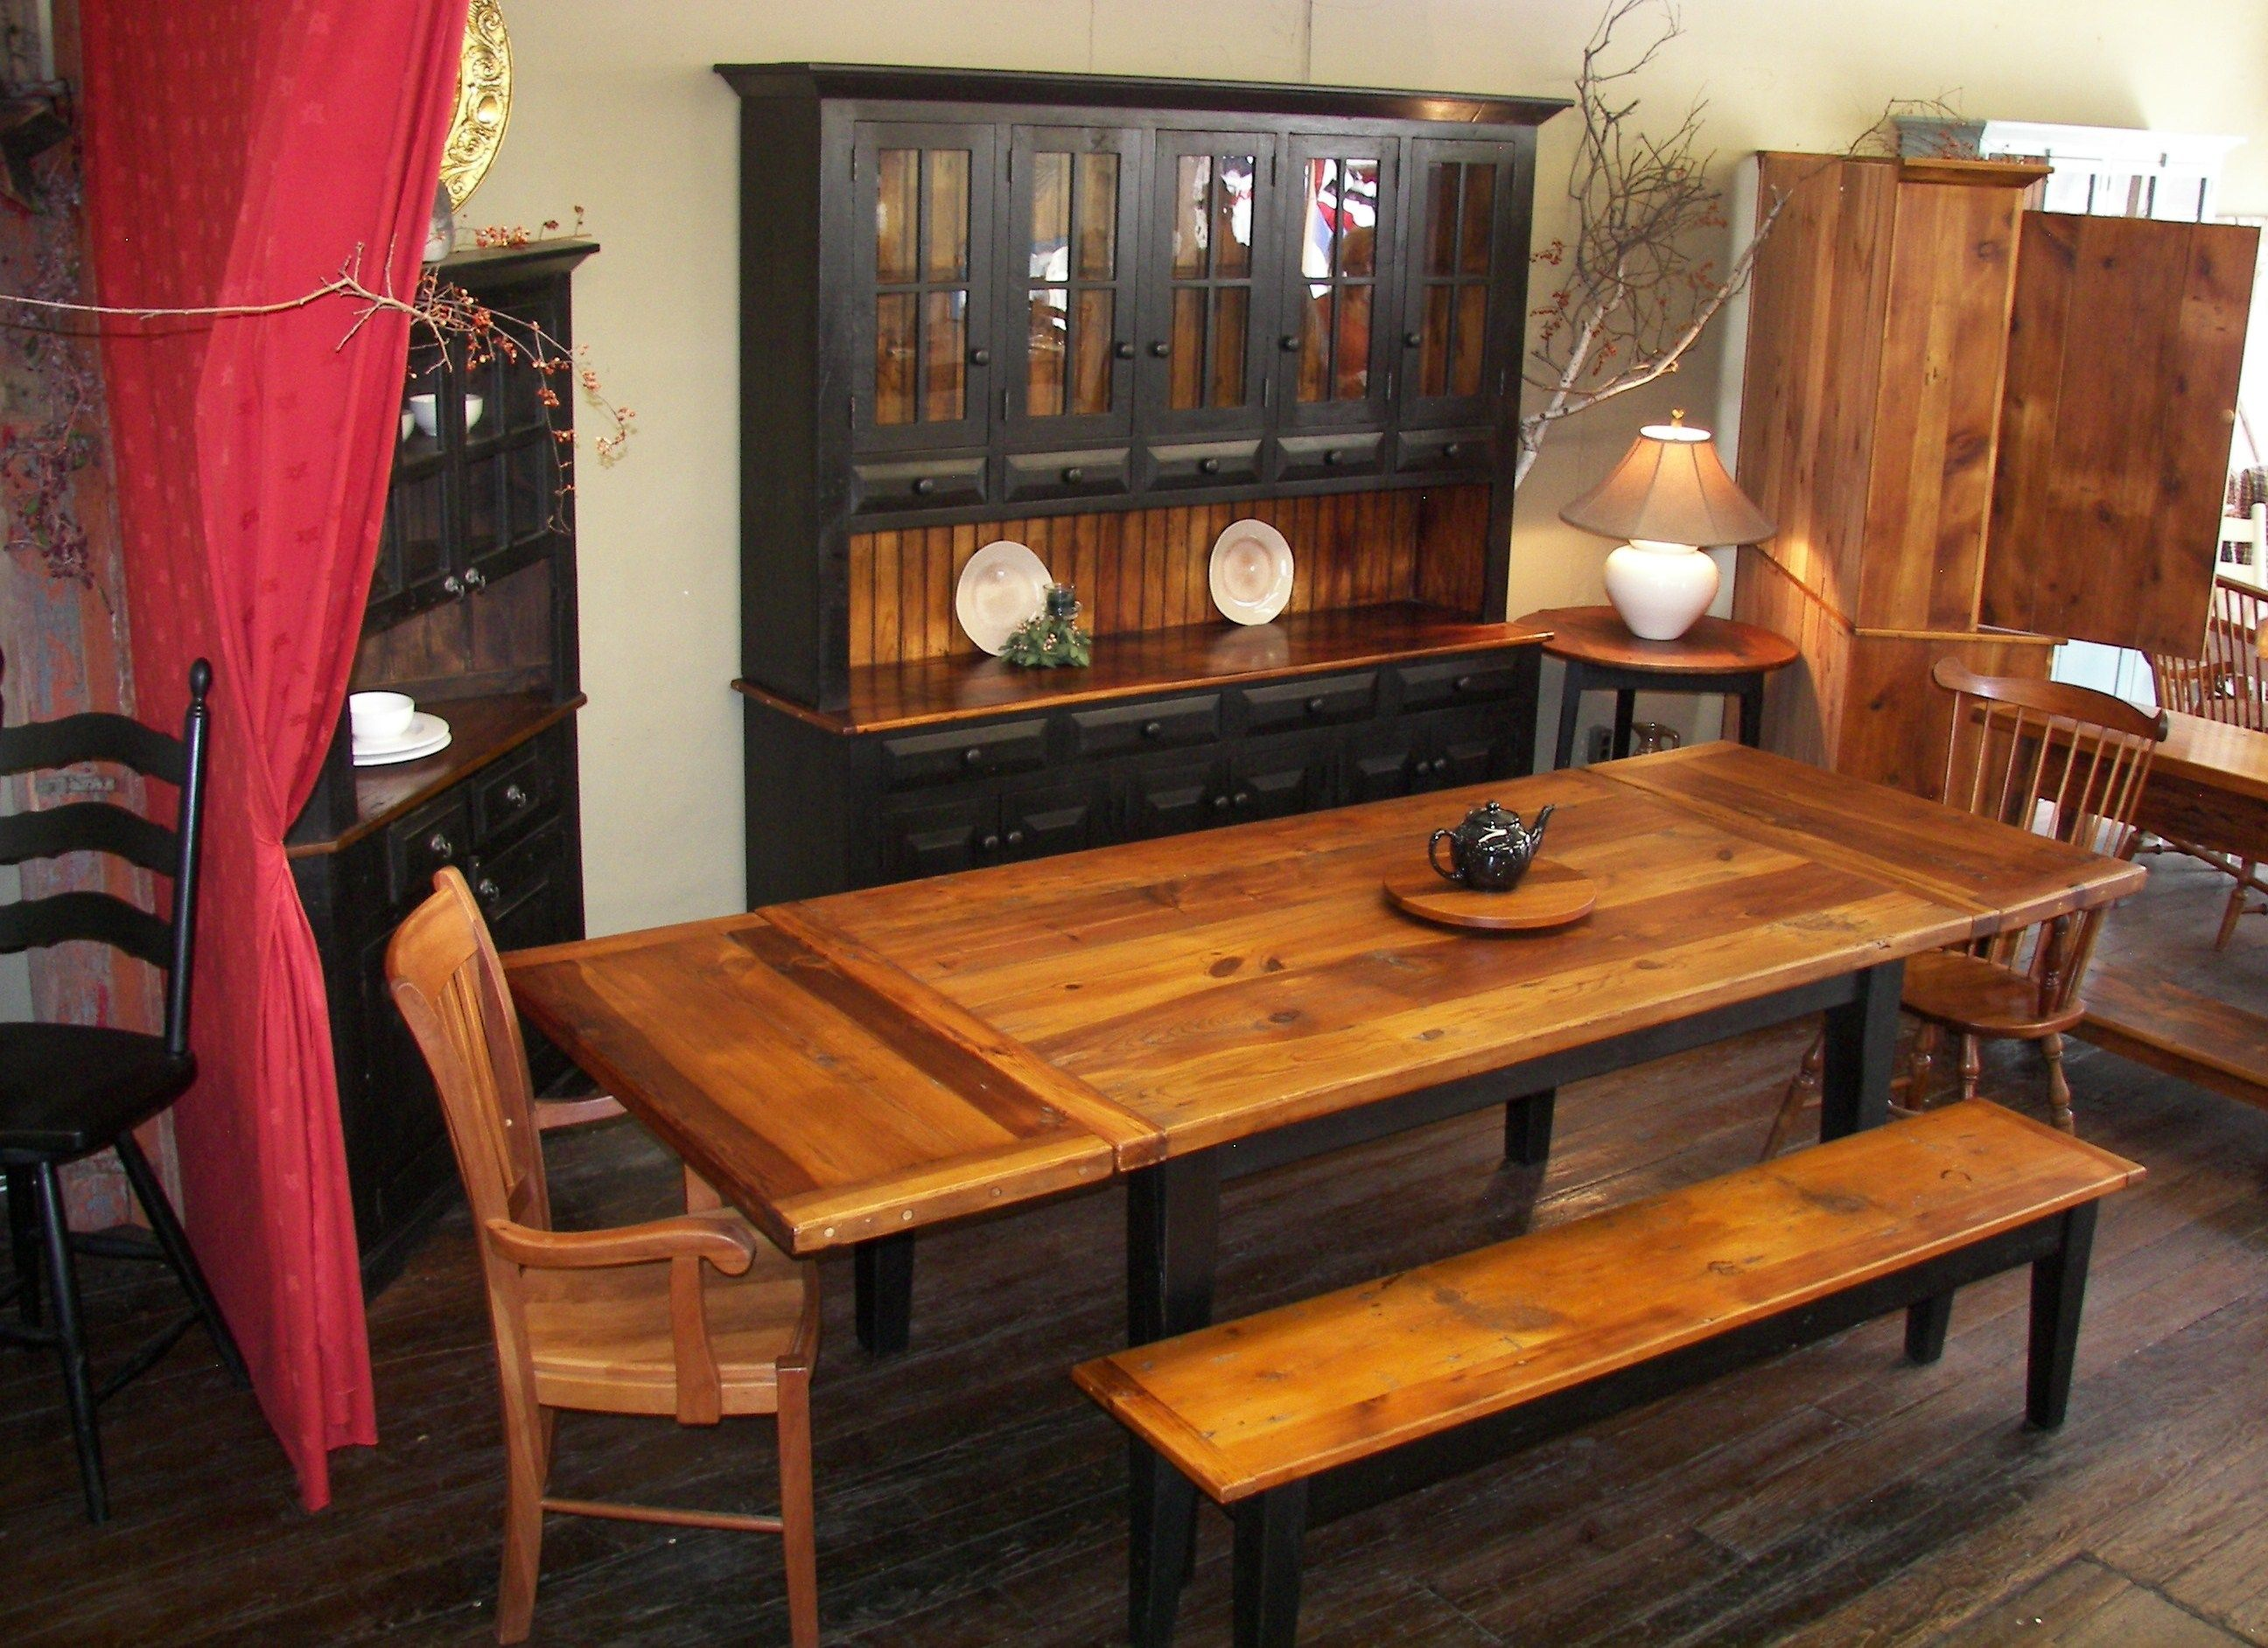 Pin on Reclaimed Barn Wood Furniture by E. Braun Farm Tables